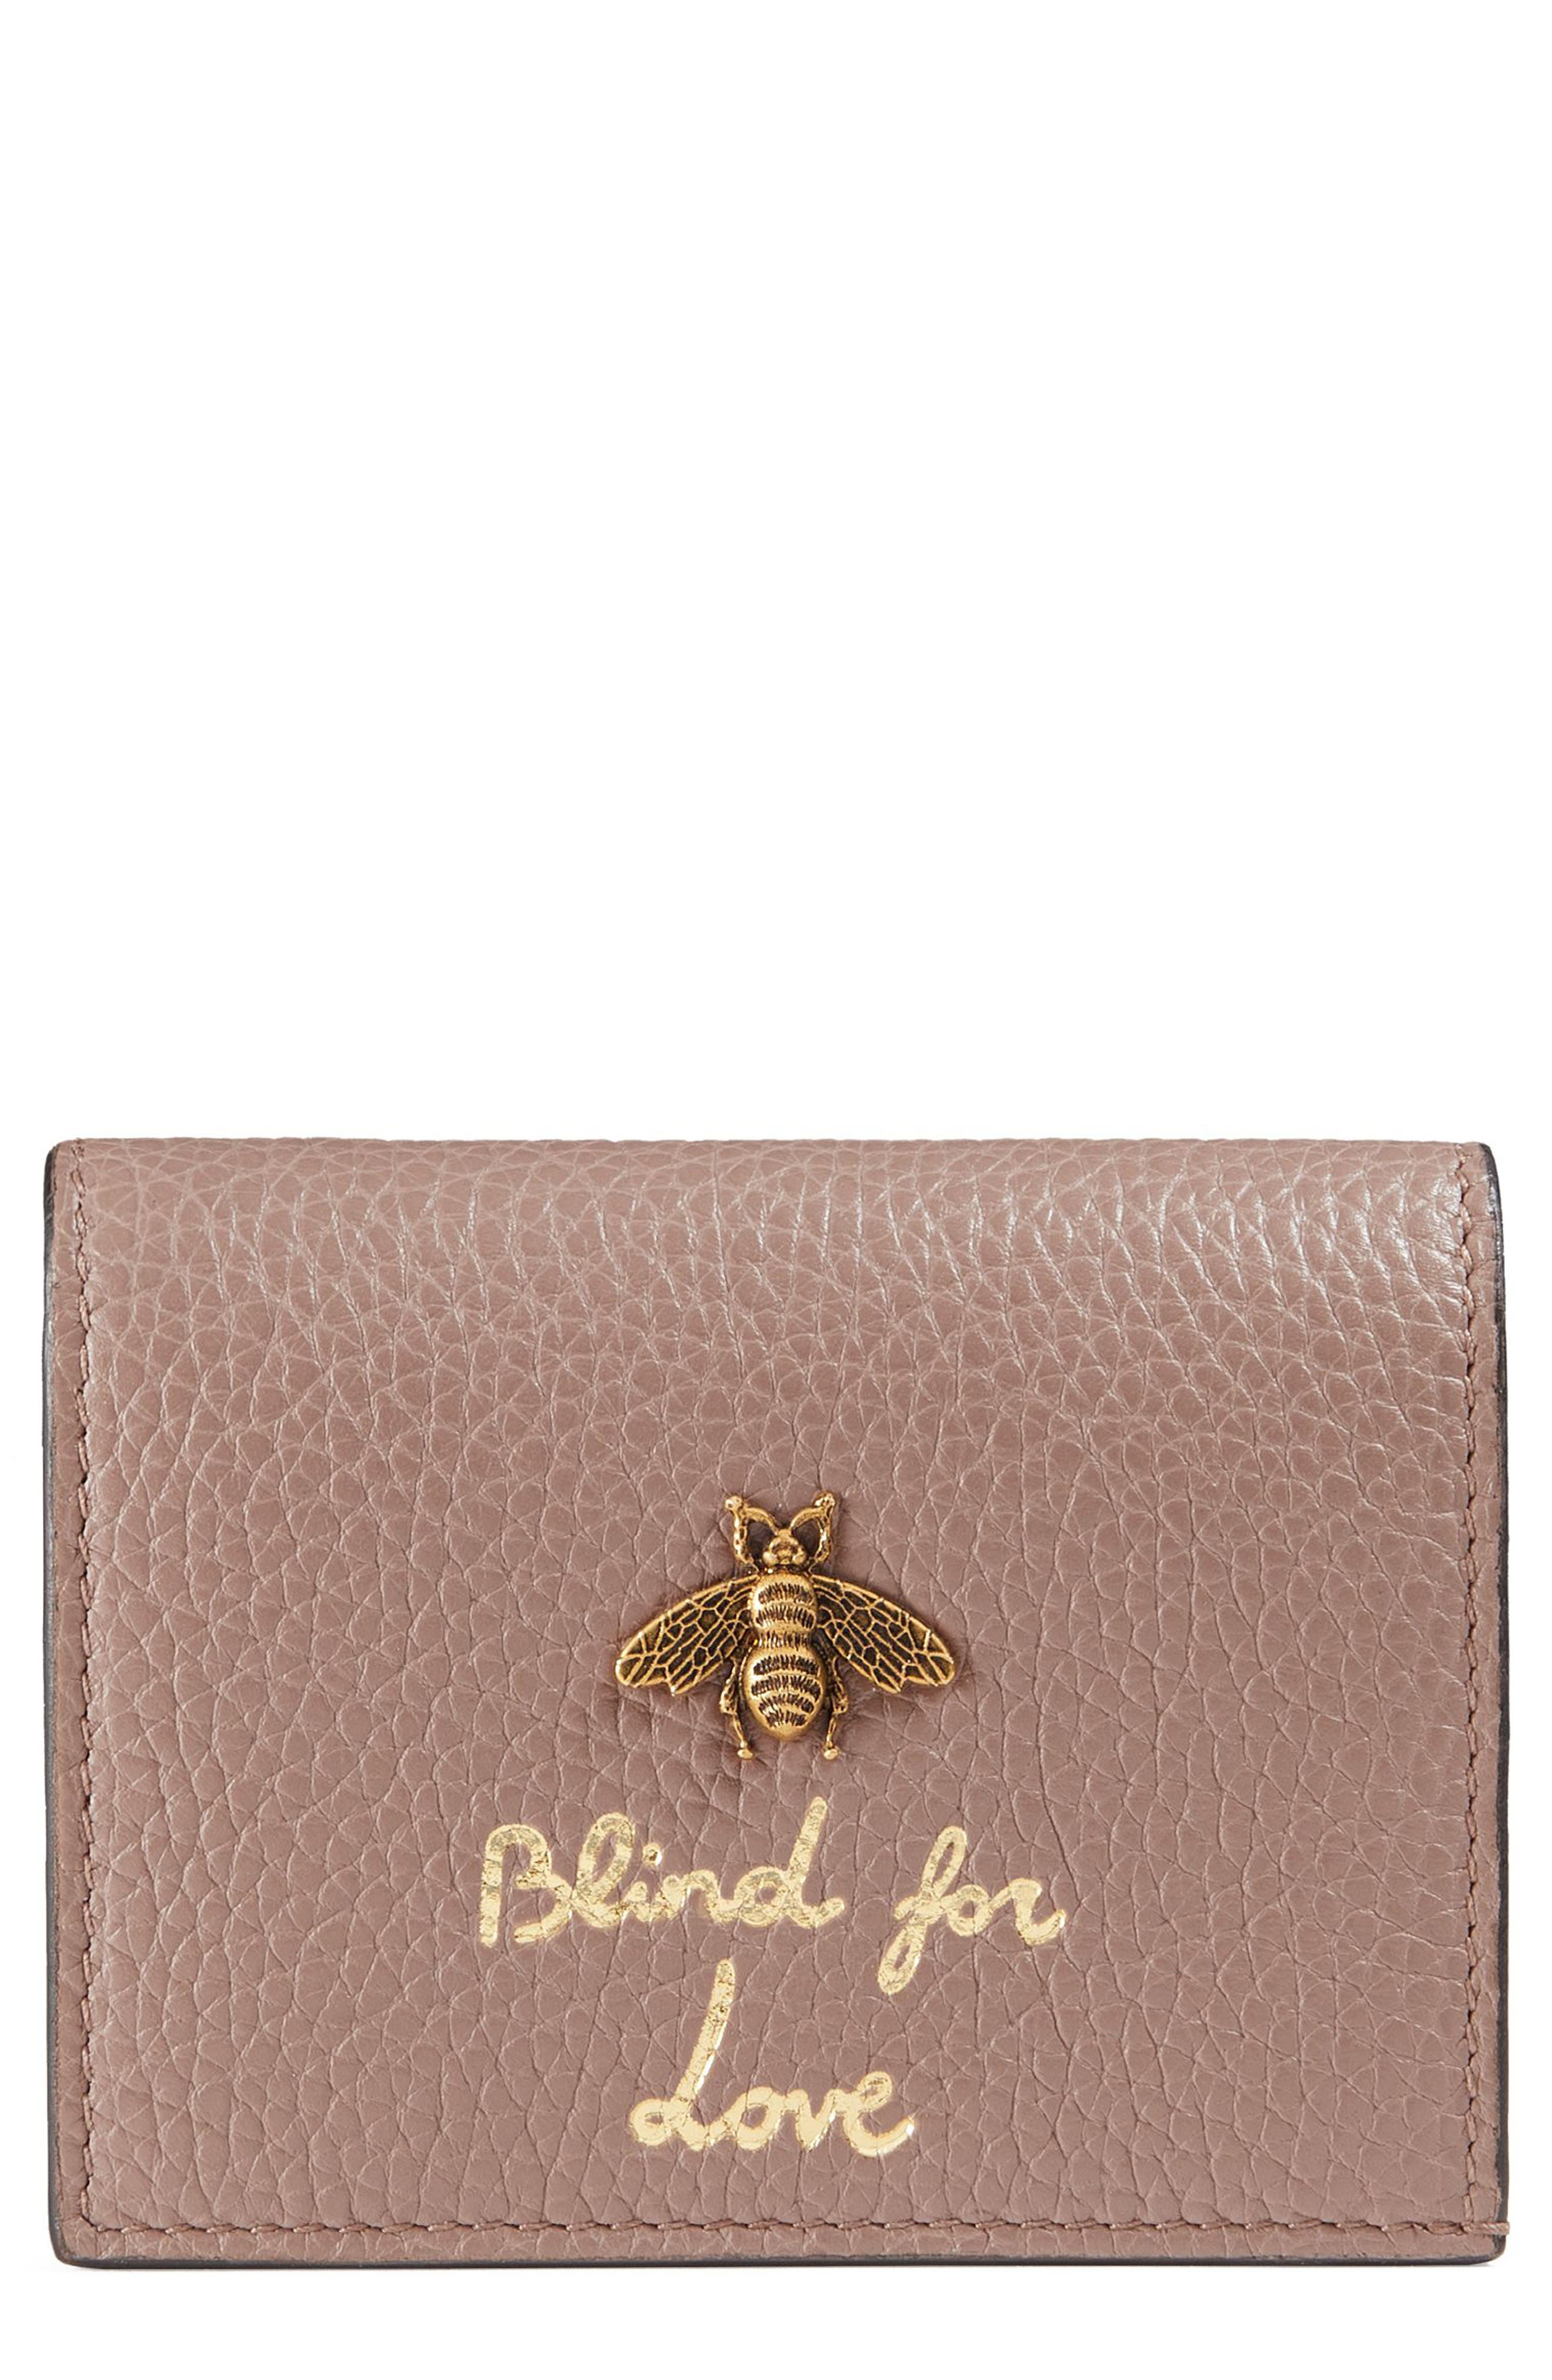 Gucci Animalier Bee Leather Card Case